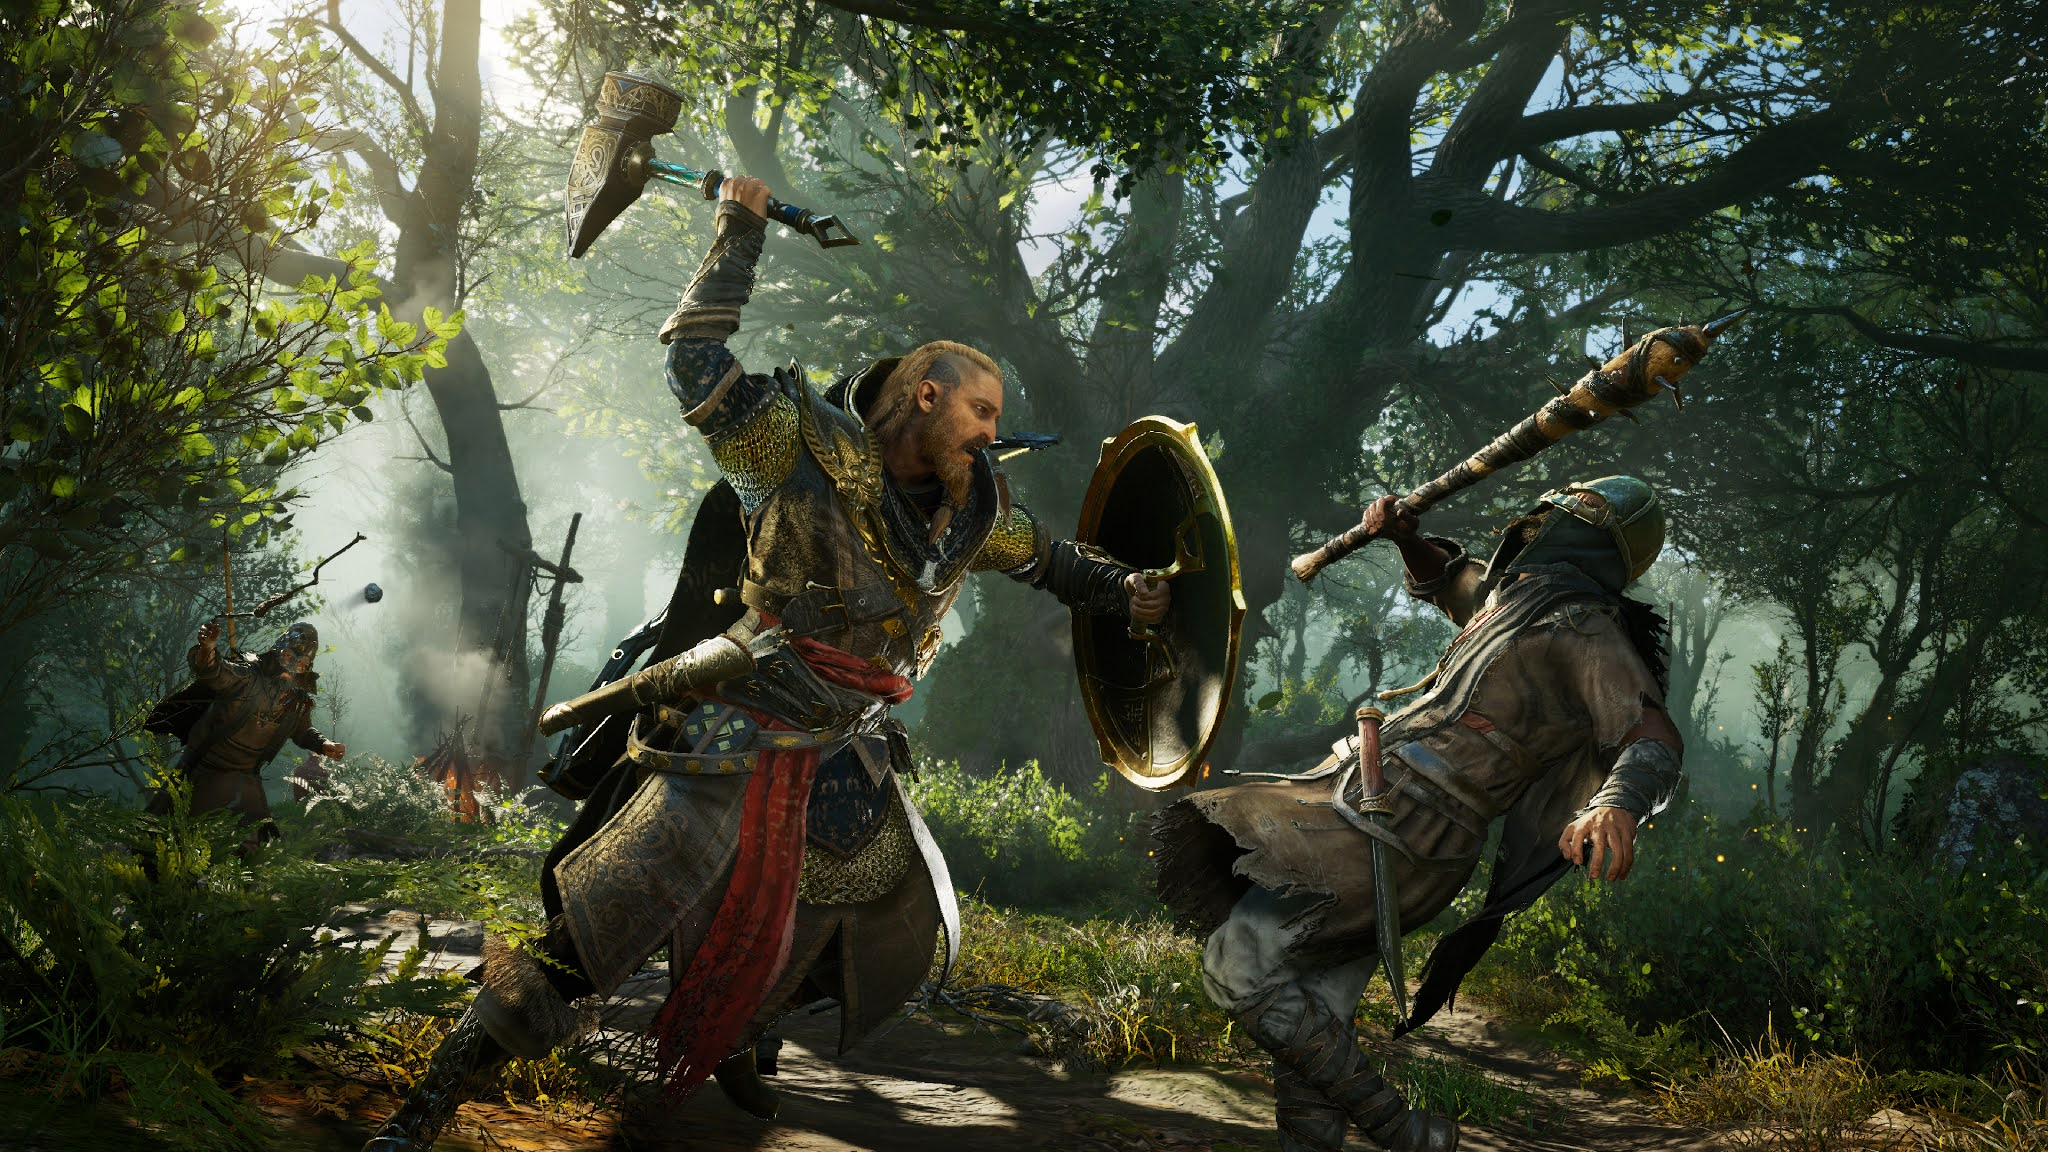 Assassin's Creed Valhalla Solution: All Decisions That Can Affect the Plot Guide